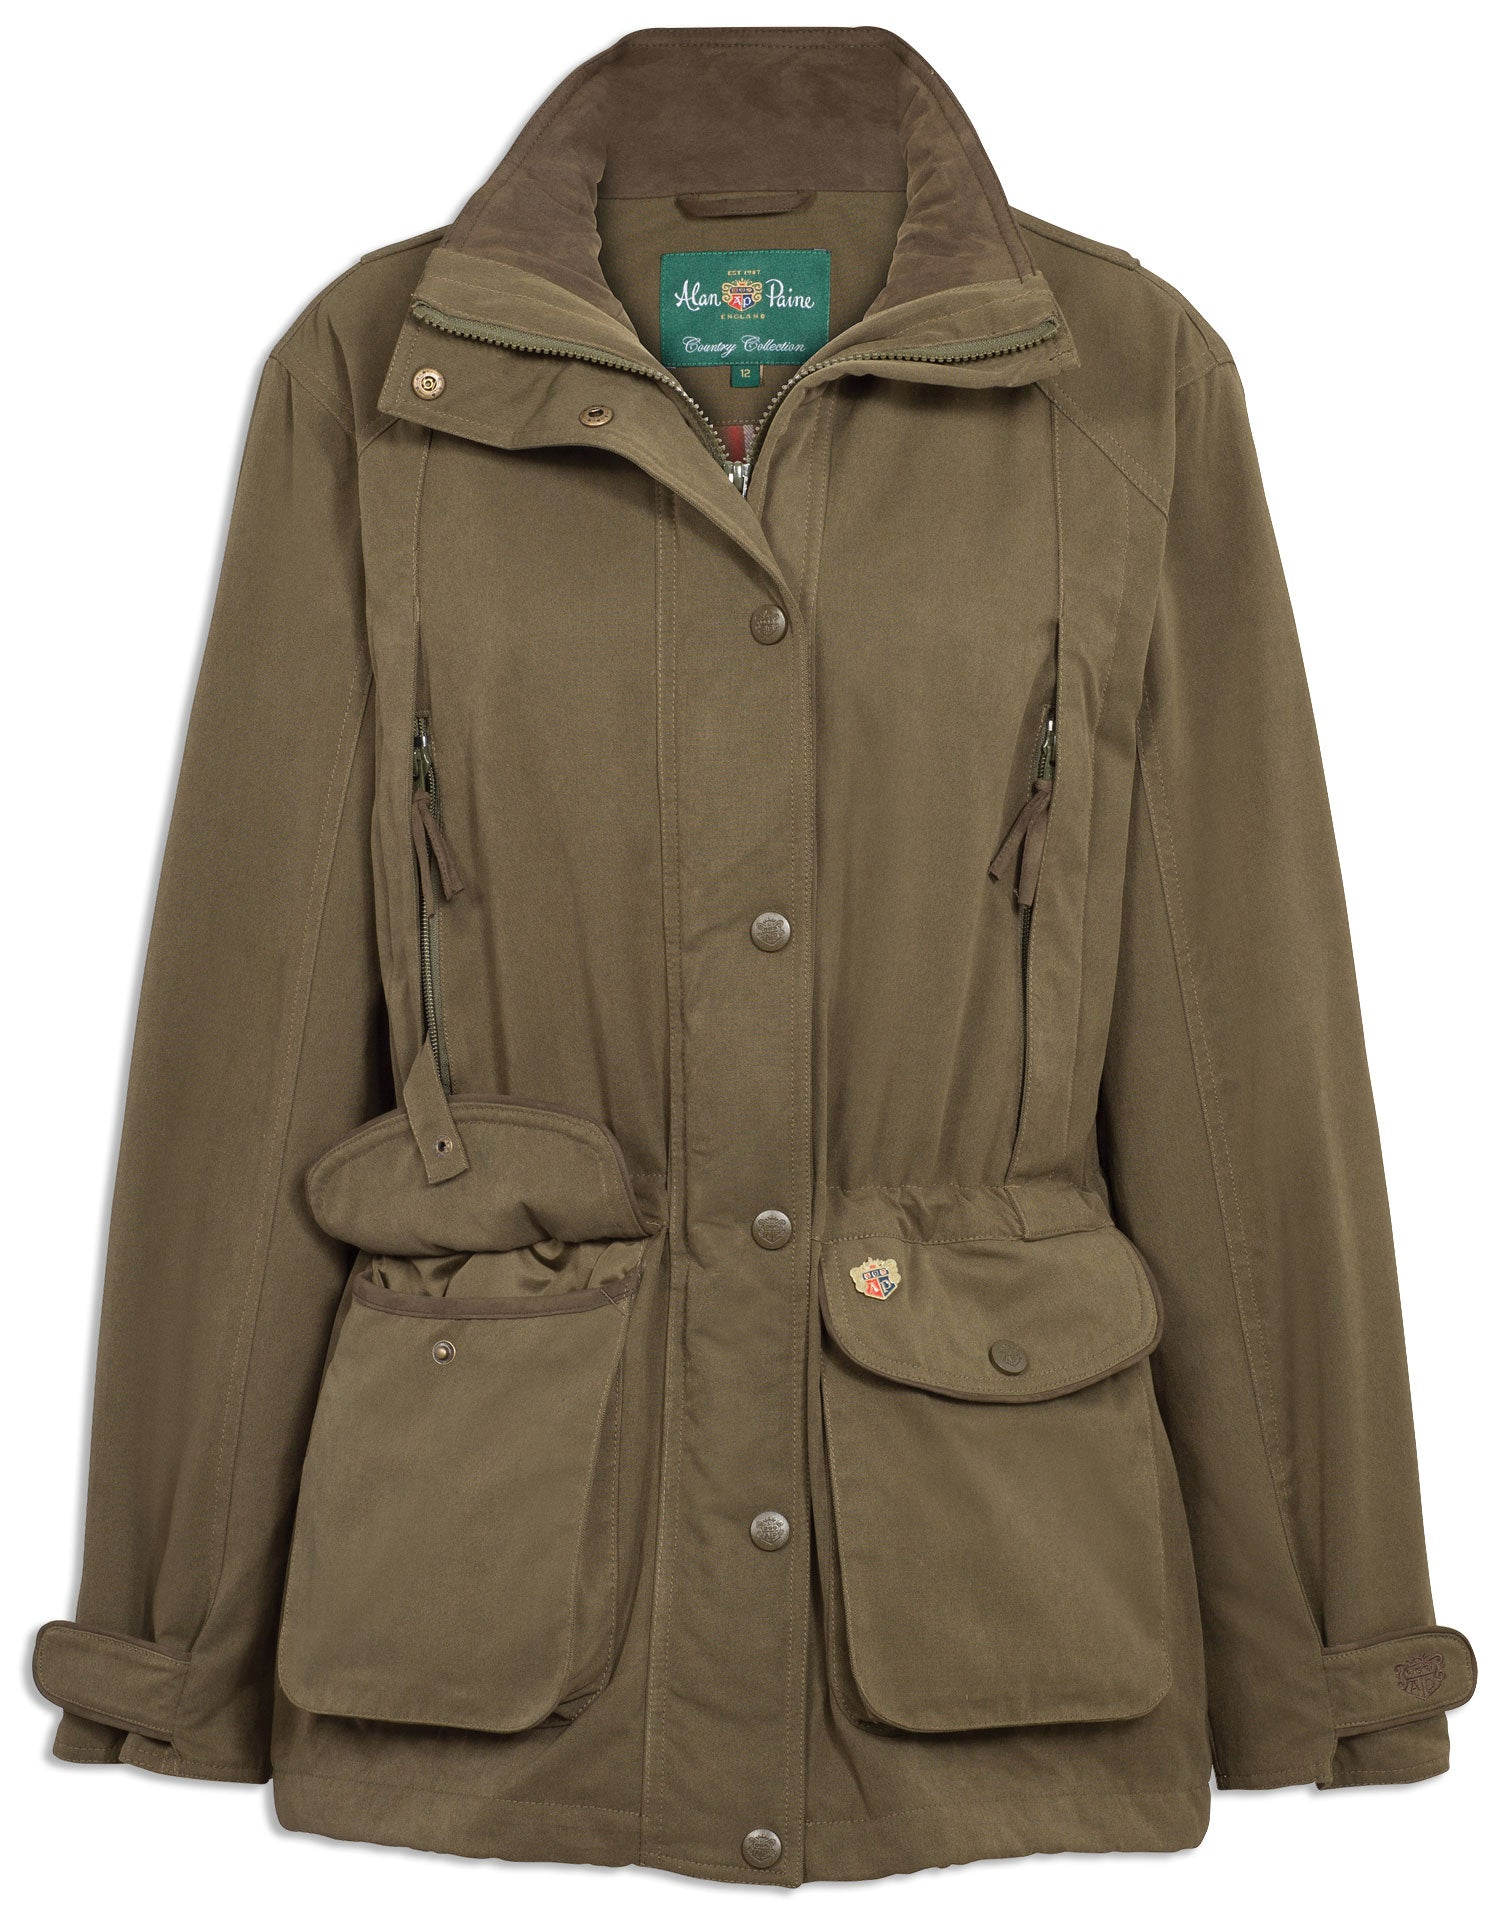 Alan Paine Dunswell Ladies Waterproof Shooting Coat in olive